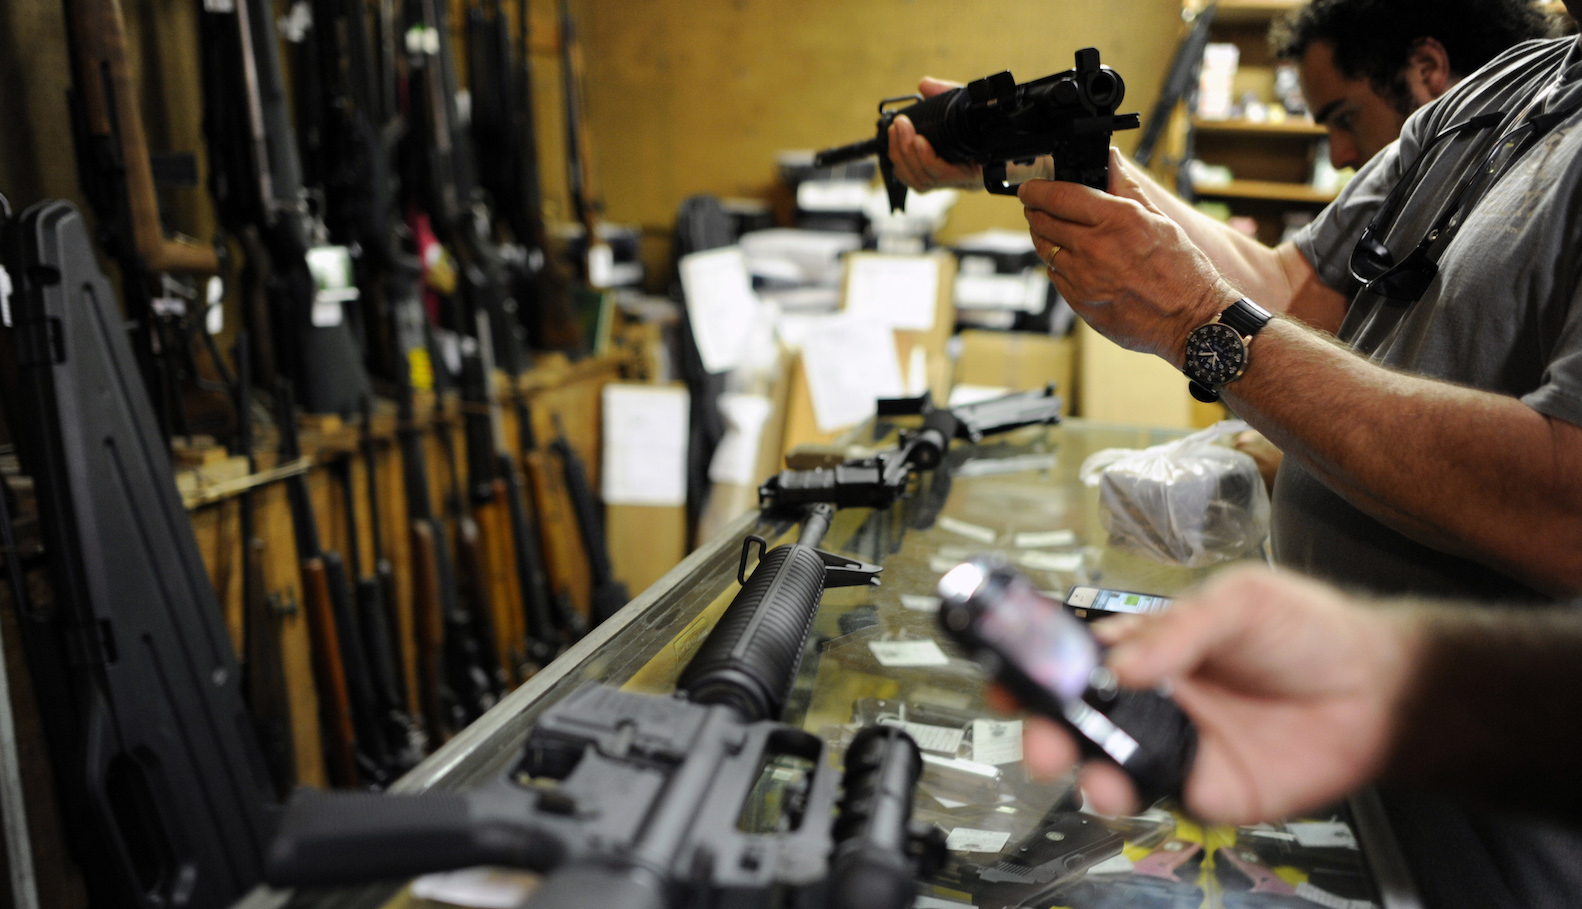 Customers look over the last two AR-15 style rifles for sale inside the Bullet Hole gun shop, as gun enthusiasts start to crowd into the shop before an expected gun control announcement by U.S. President Barack Obama, in Sarasota, Florida January 16, 2013. U.S. Vice President Joe Biden and other members of Obama's cabinet have held a series of meetings with officials in the weapons and entertainment industry as part of a task force requested by the president after the December 14 school shooting in Newtown, Connecticut, in which 20 children and six adults were killed.  REUTERS/Brian Blanco  (UNITED STATES - Tags: SOCIETY POLITICS) - GM1E91H028501